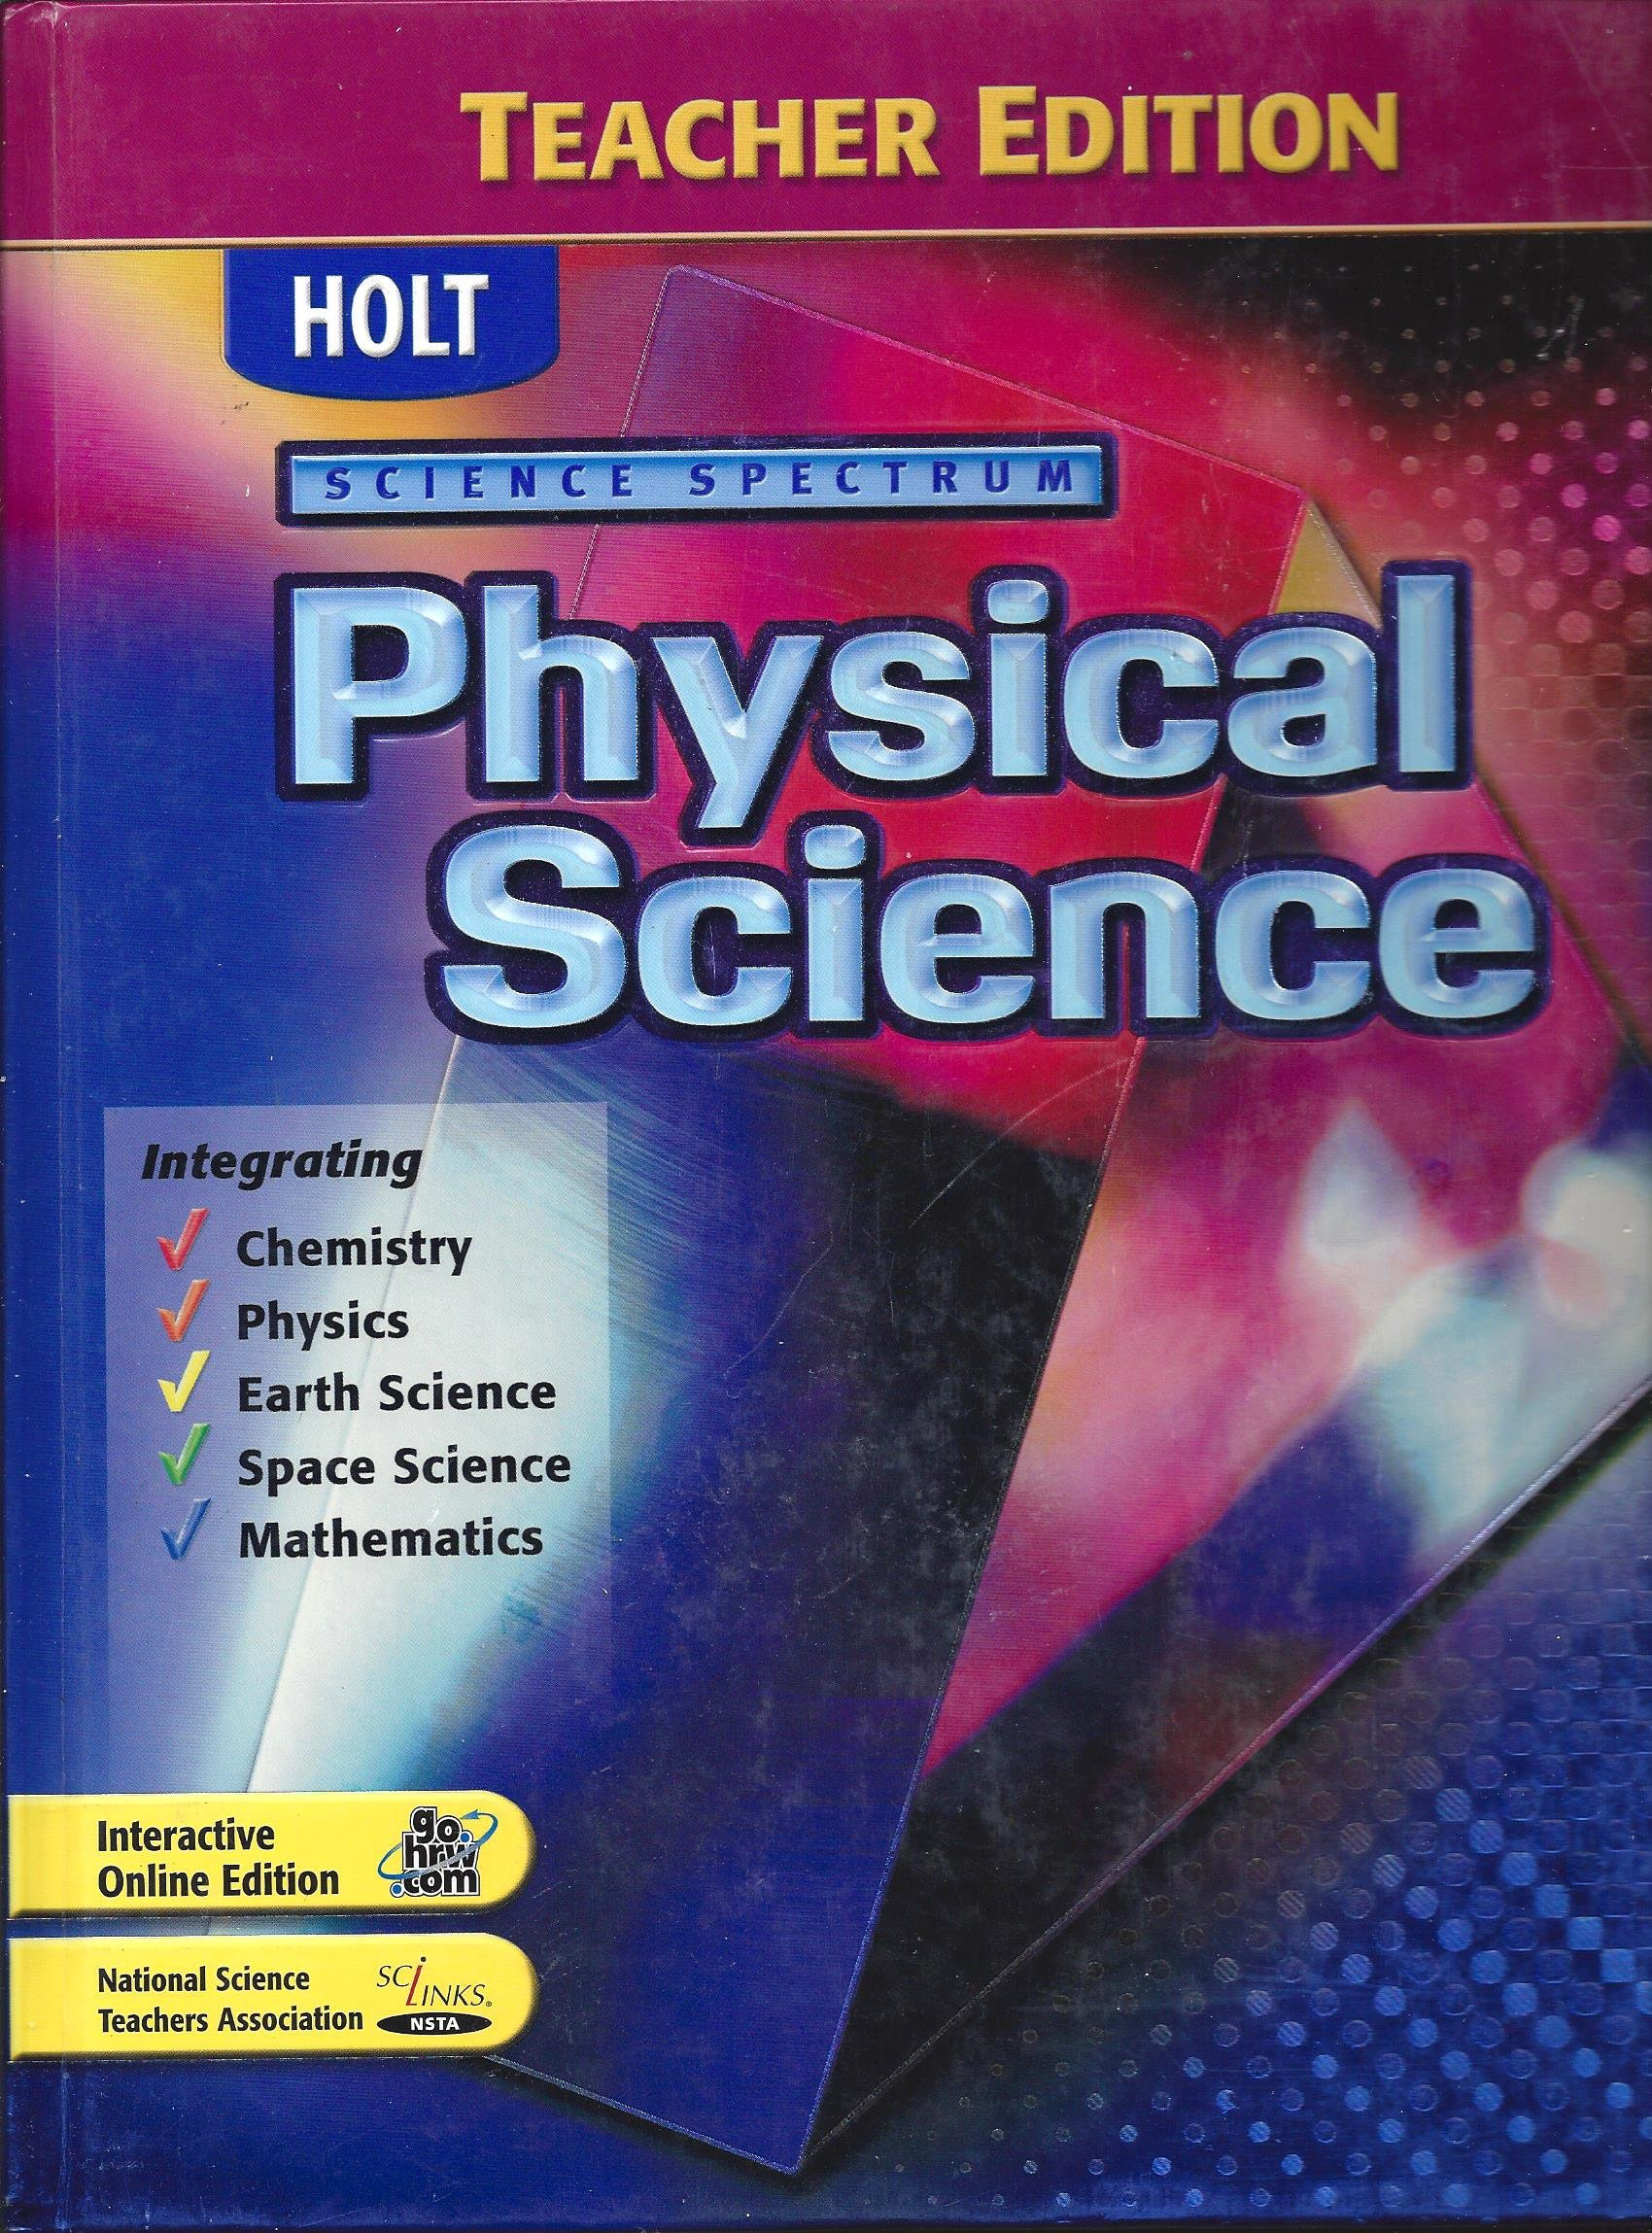 Worksheets Holt Science Spectrum Worksheets holt science spectrum physical teachers edition ken dobson 9780030664717 amazon com books